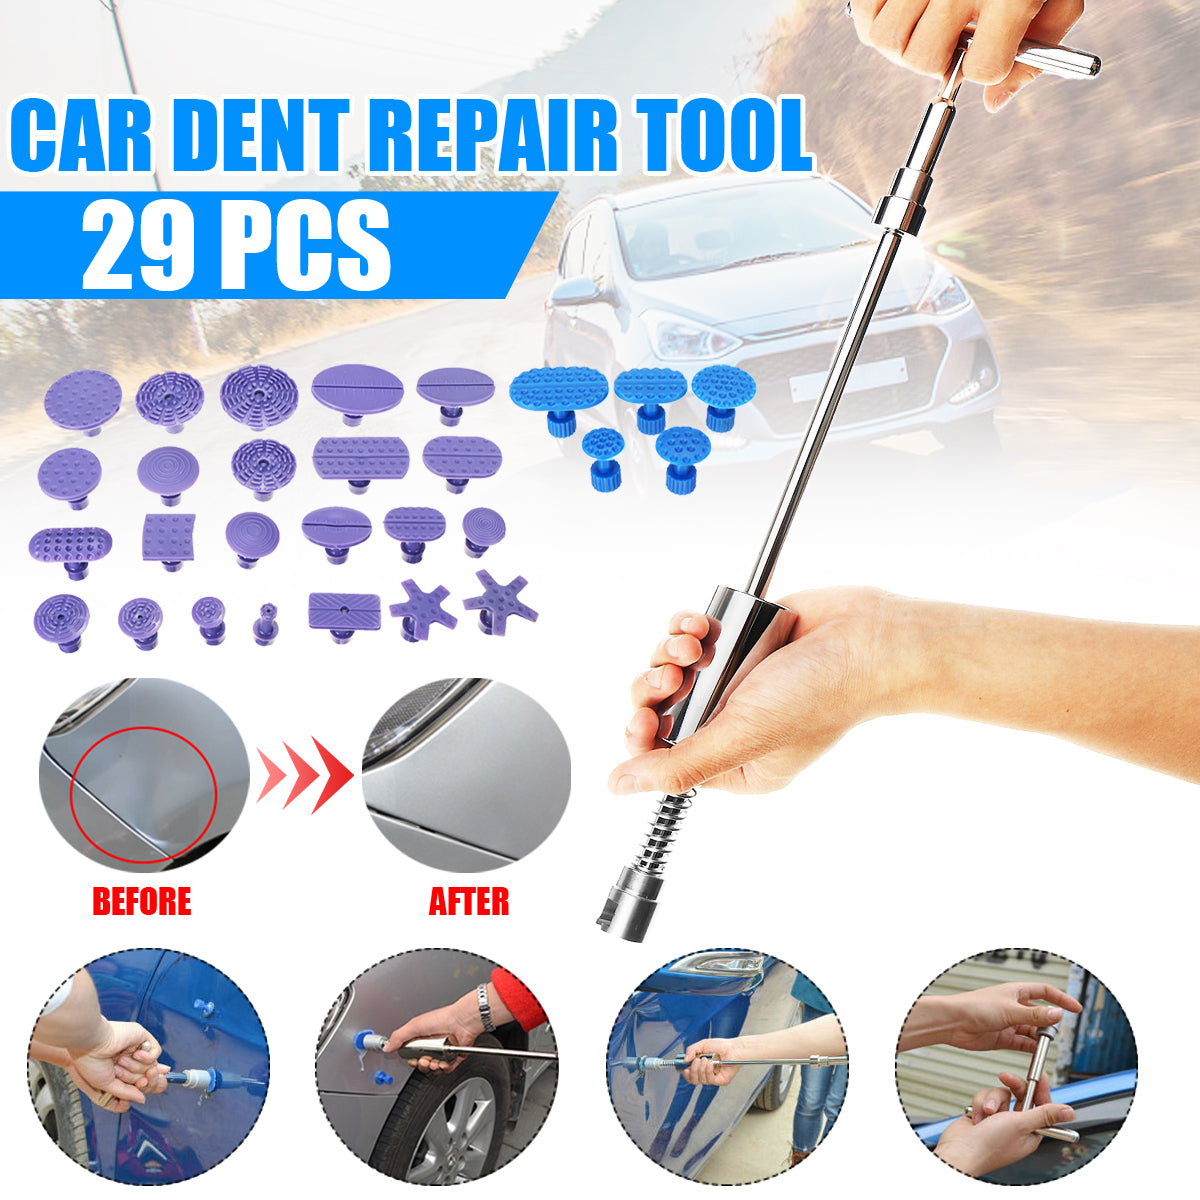 Car Dent Repair Tool Tab Accessories Body Kit 29 Pieces